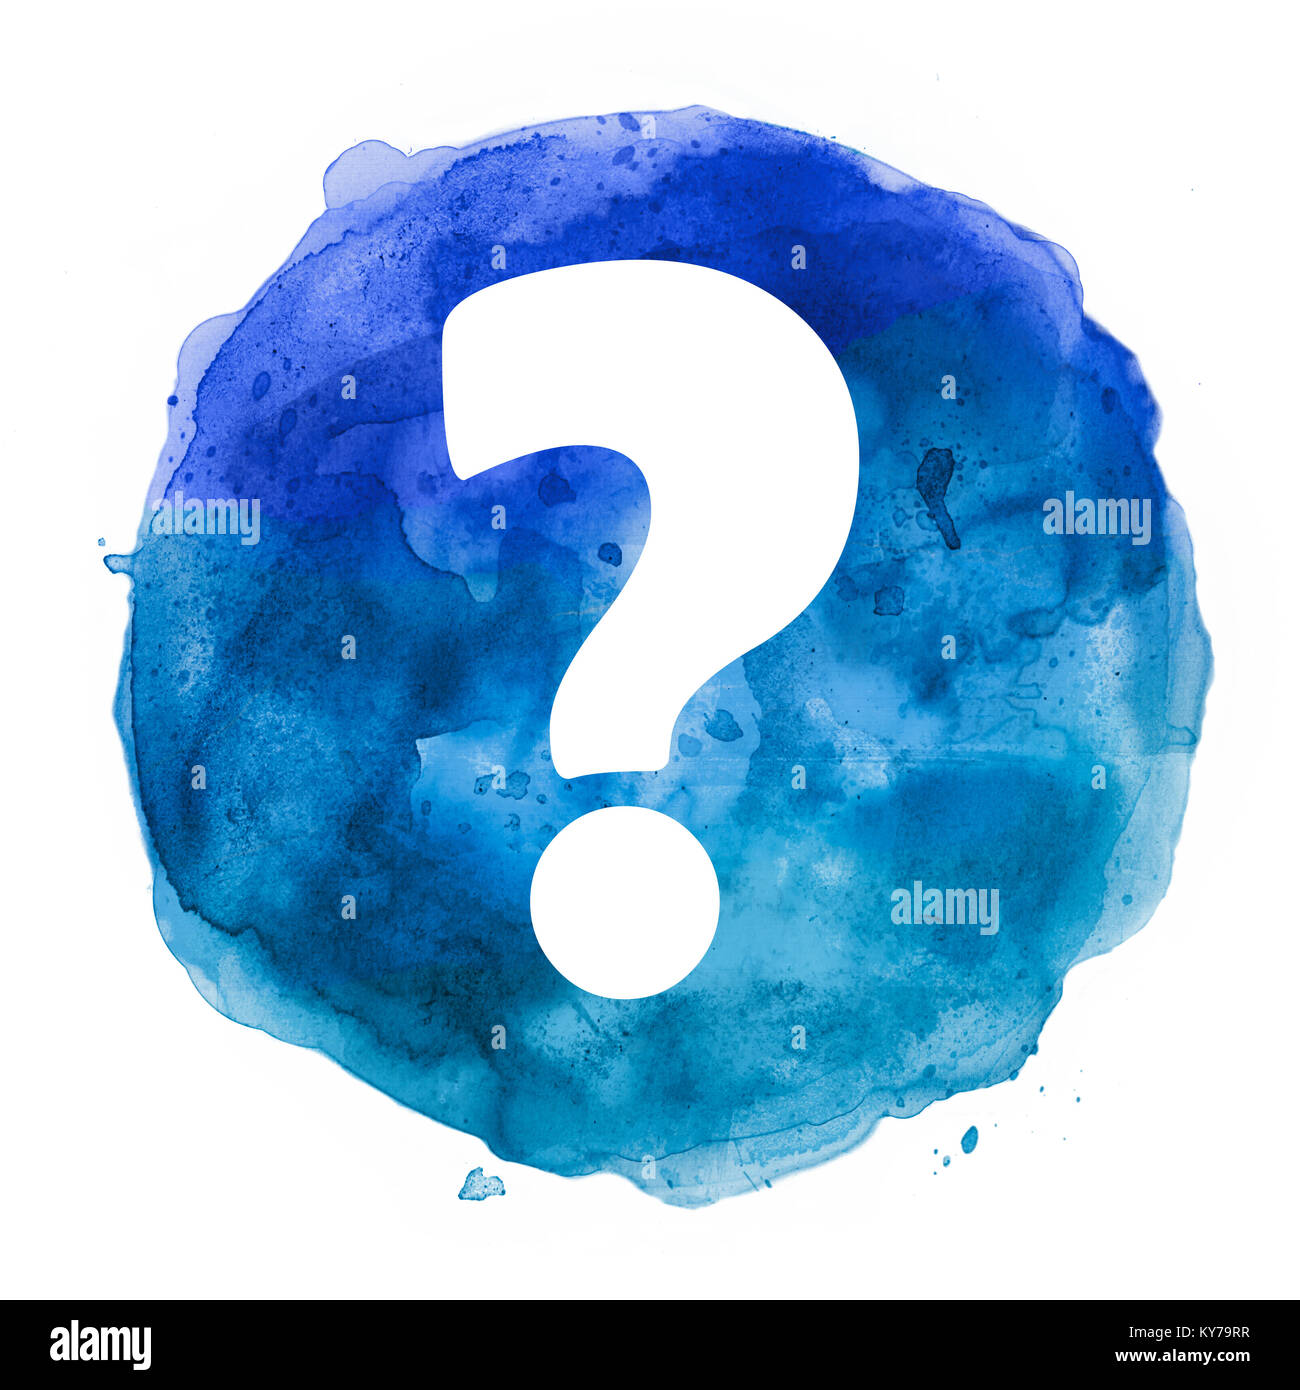 question mark in watercolor blot - Stock Image